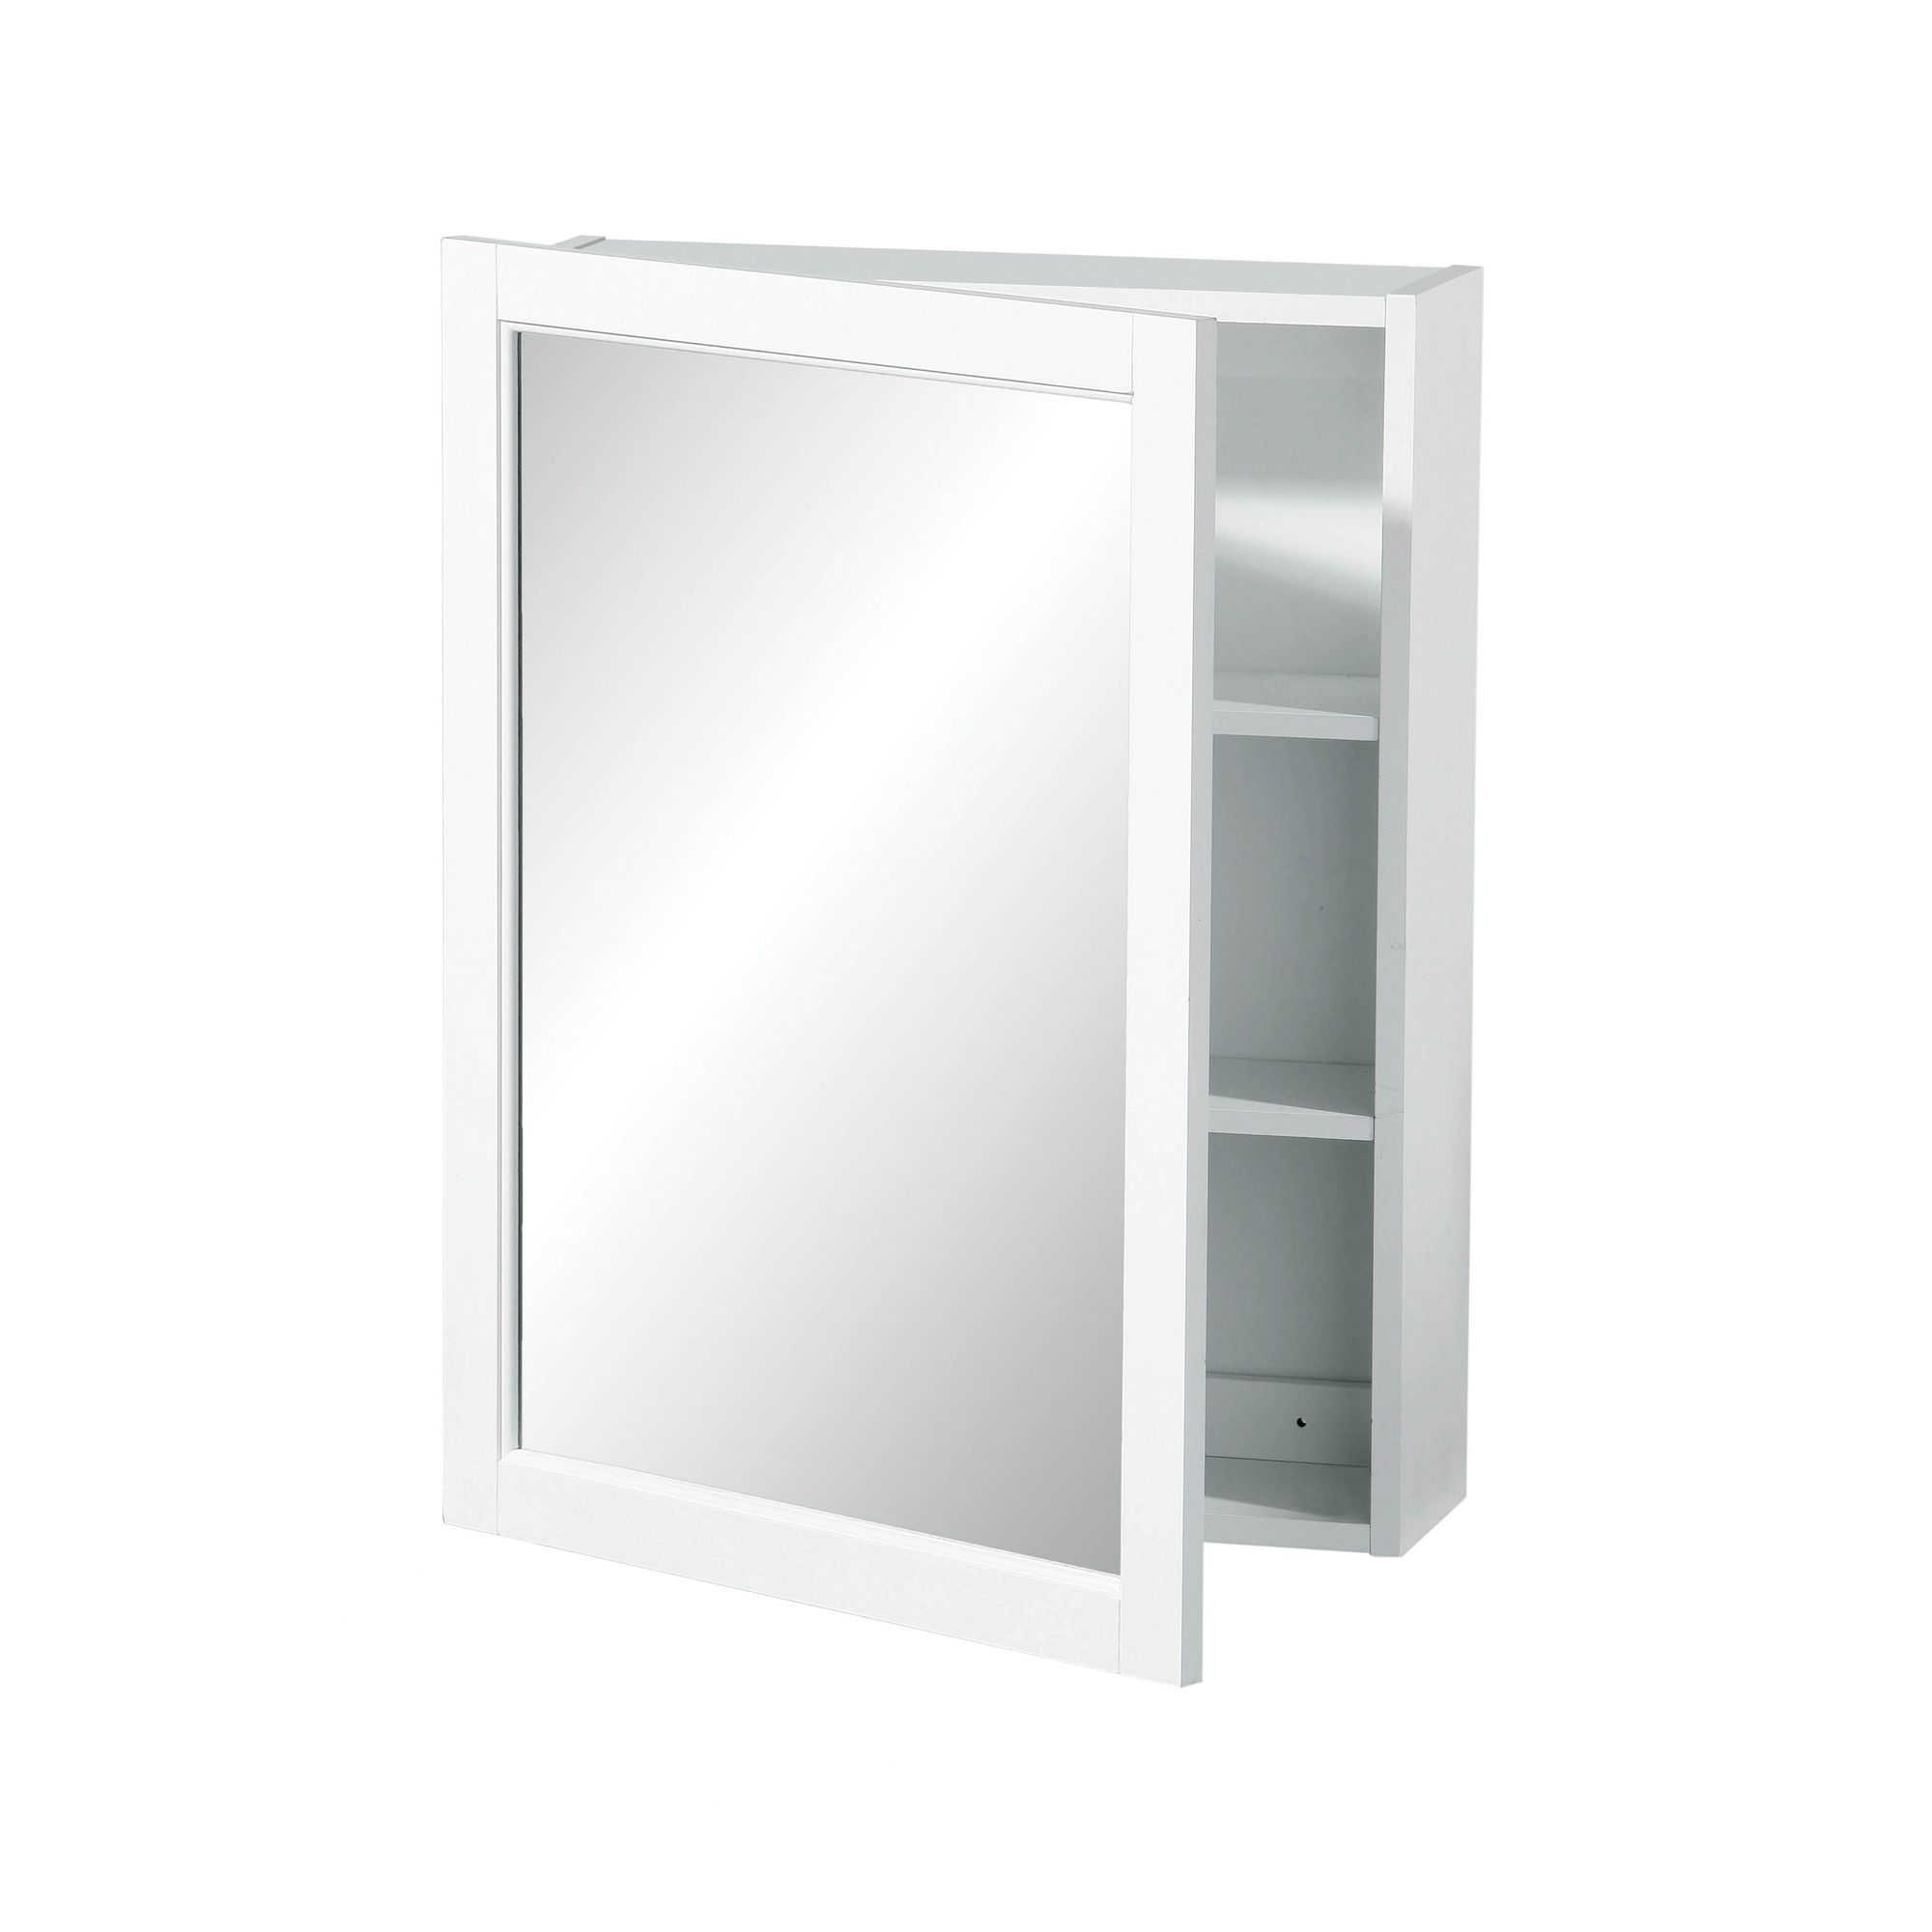 Premier Housewares Mirrored Wall Cabinet with Two Tier Shelves